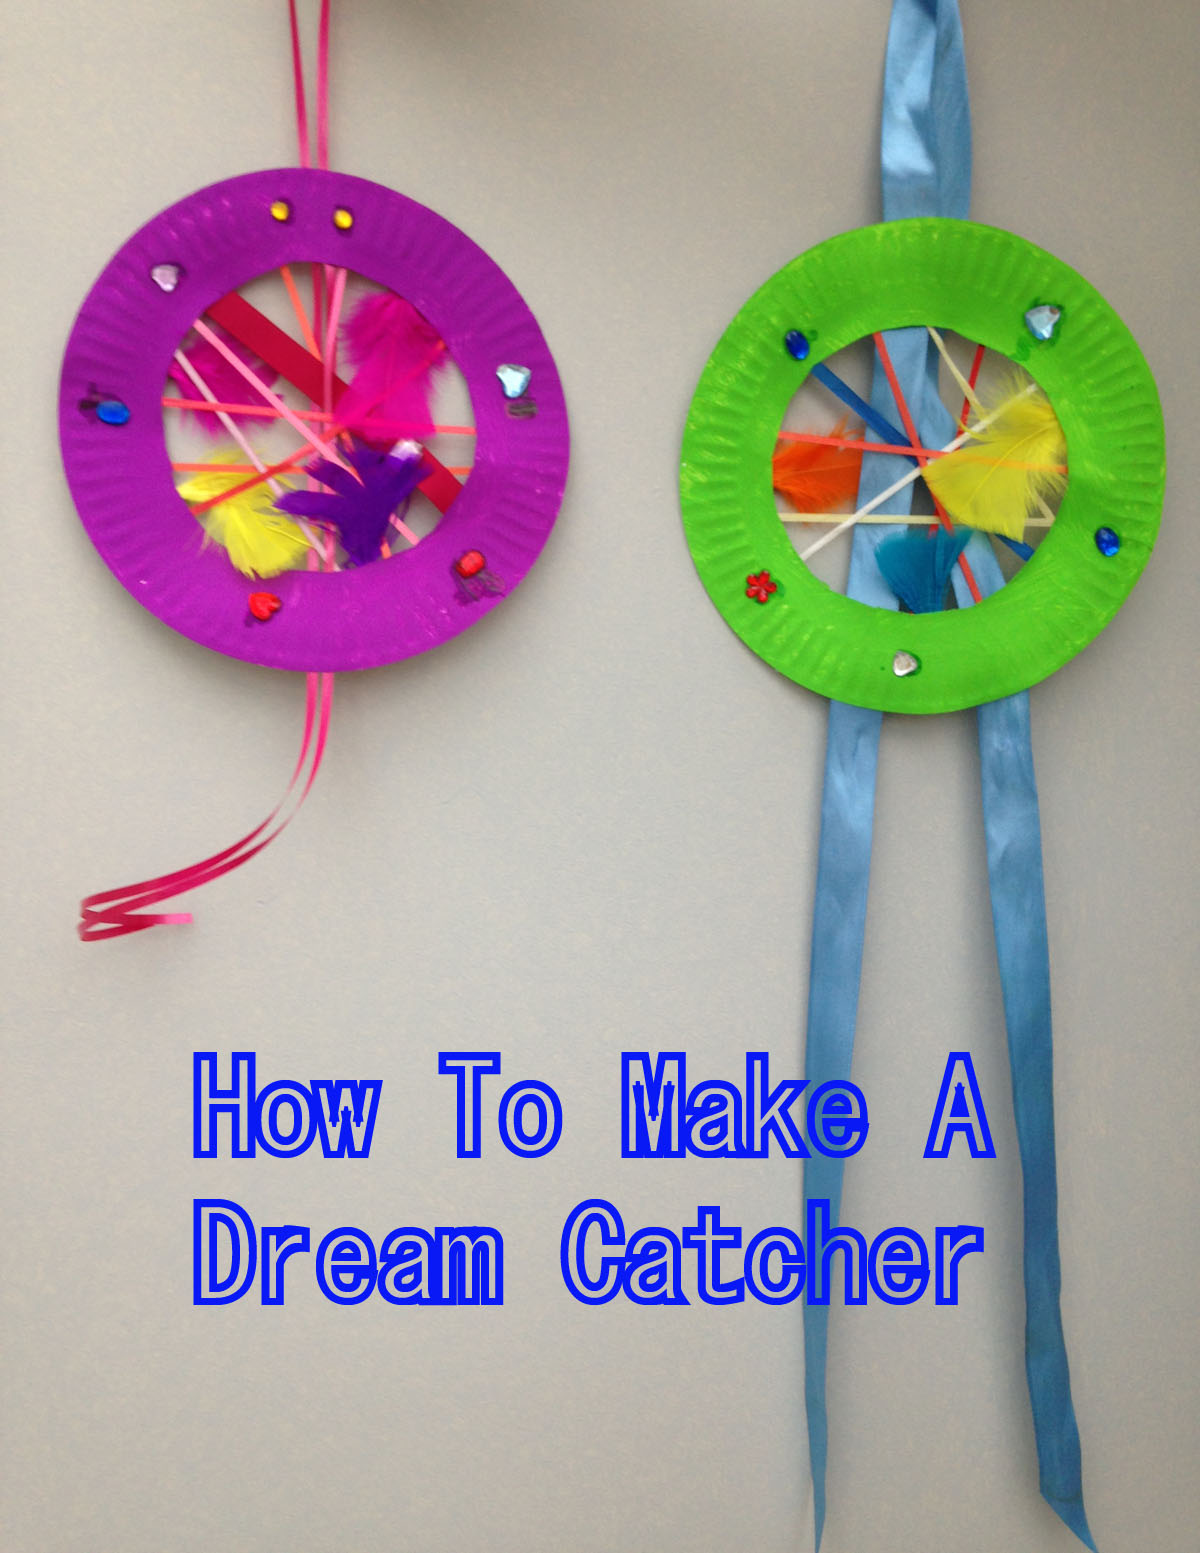 How To Draw A Simple Dream Catcher How to Make a Dream Catcher JuggleMum 39